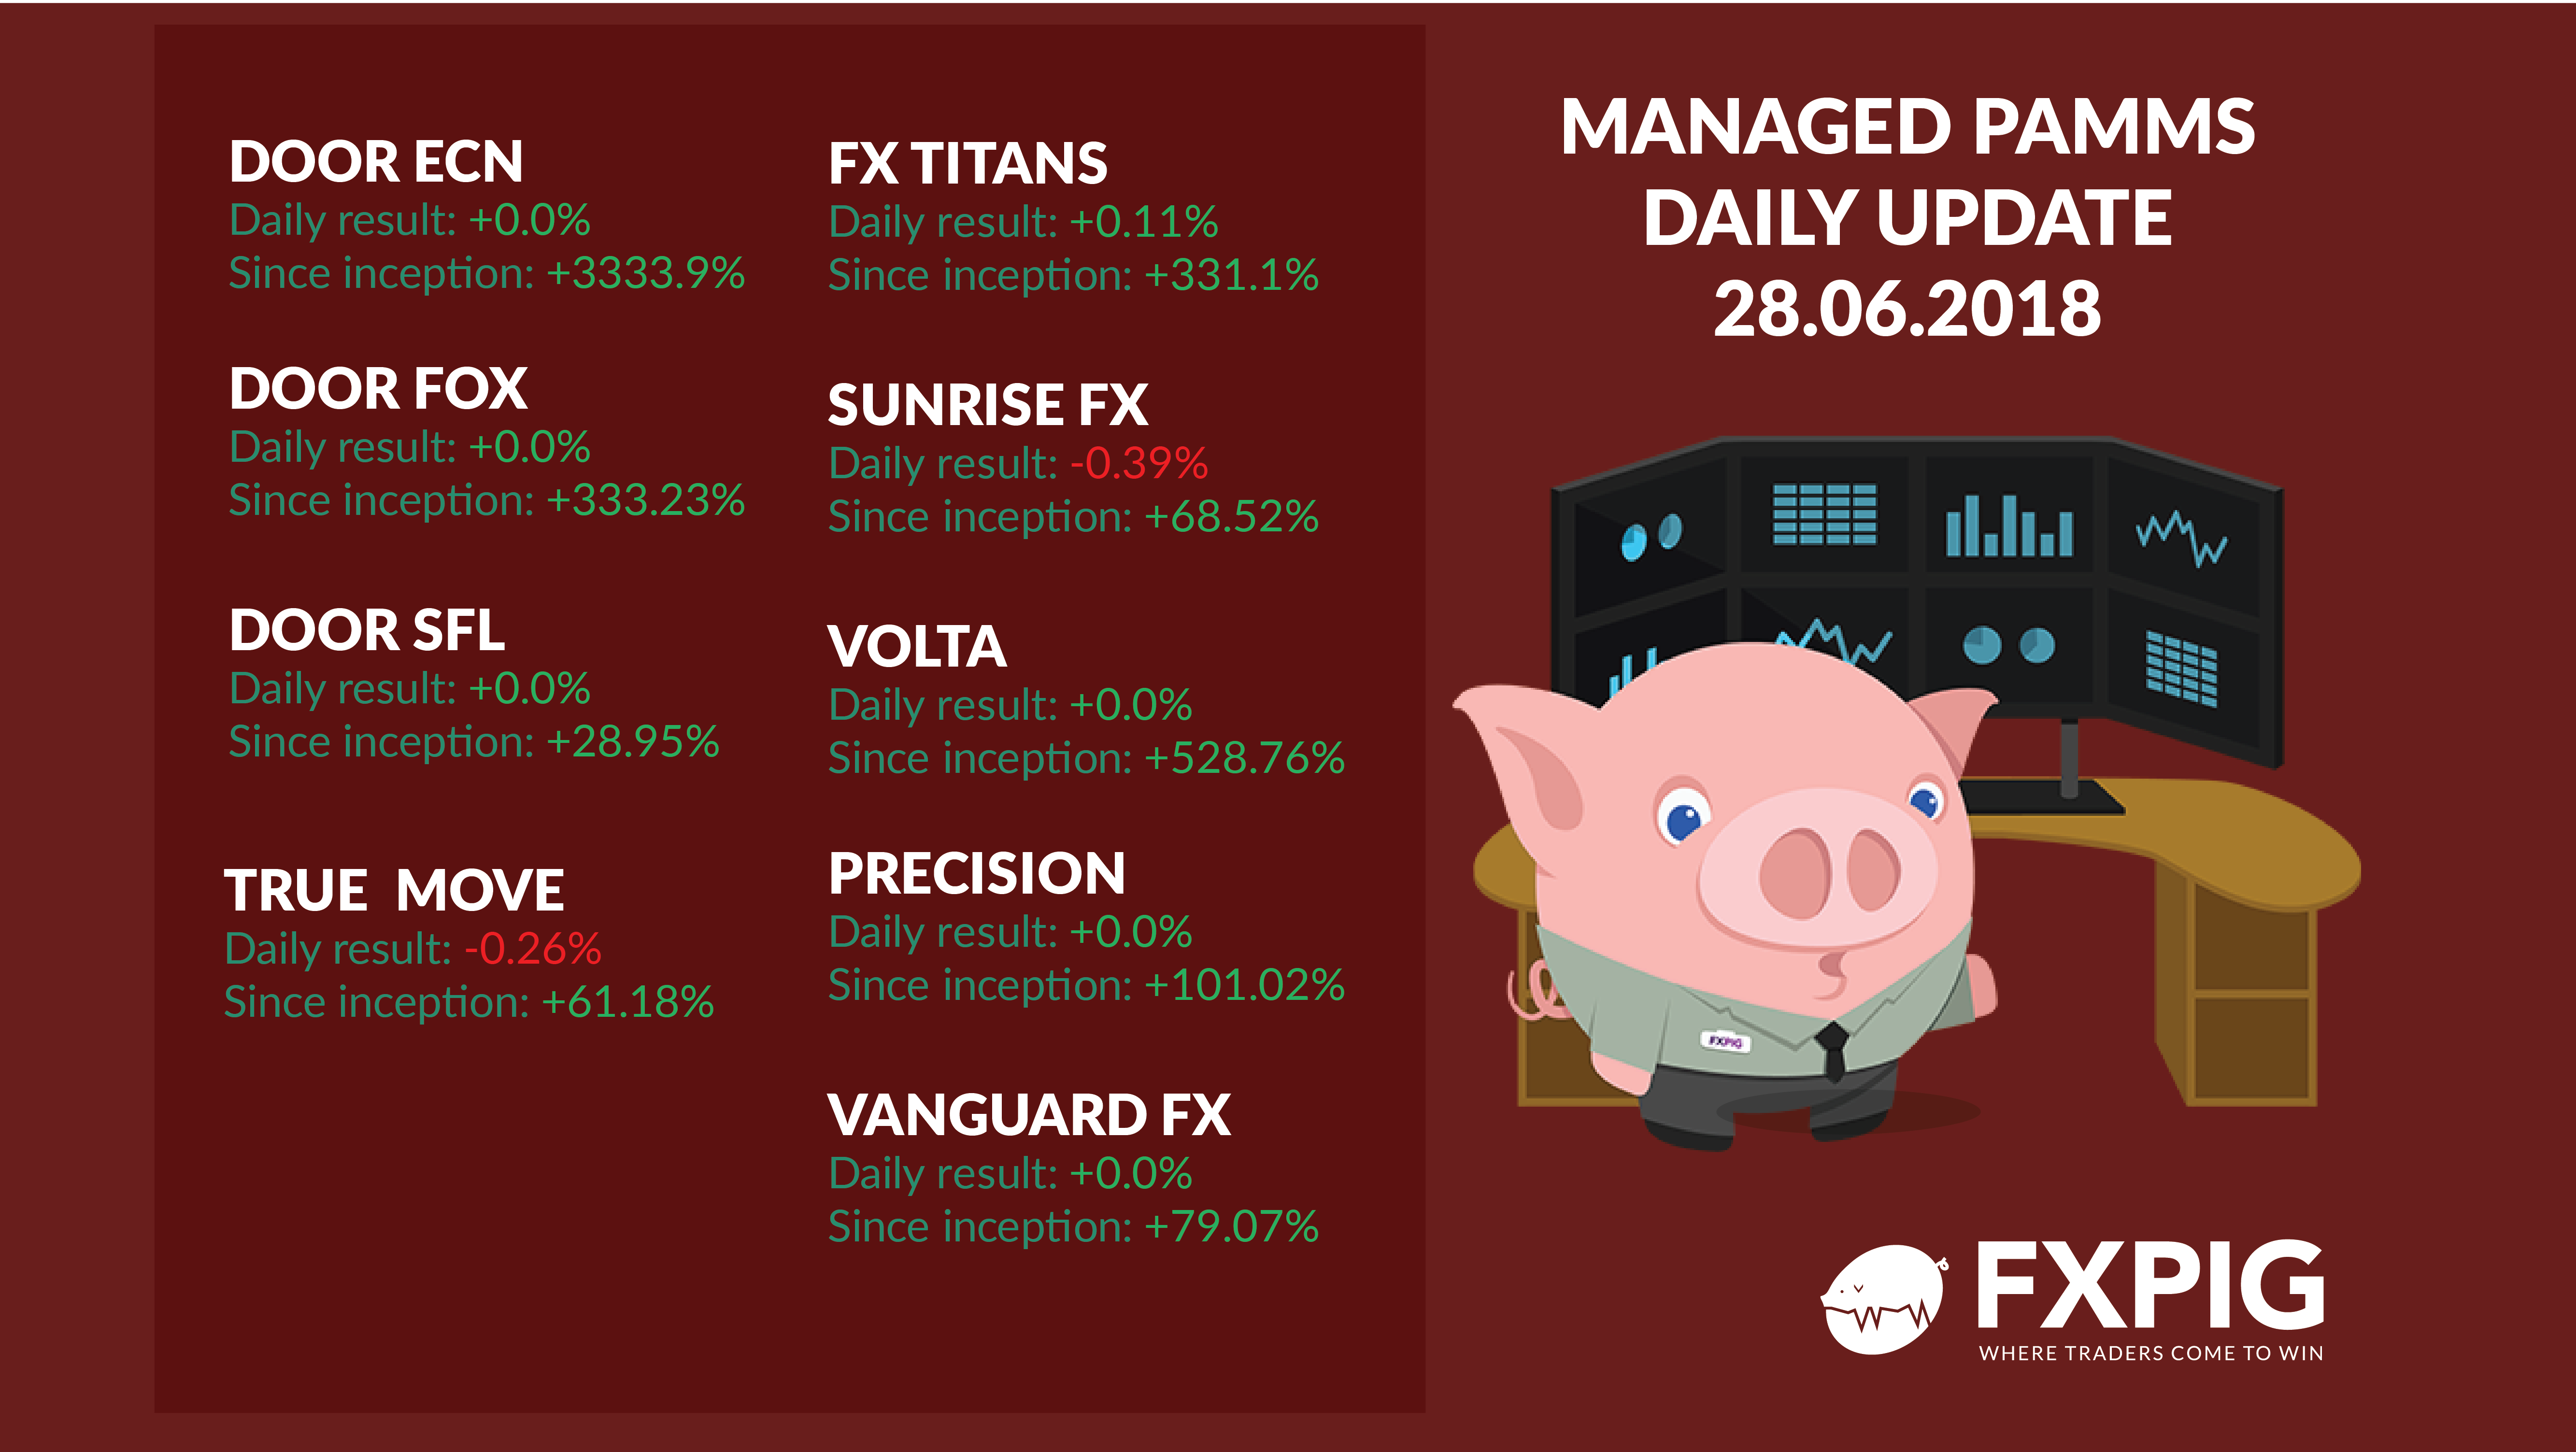 FOREX_Daily-managed-accounts-2806_FXPIG